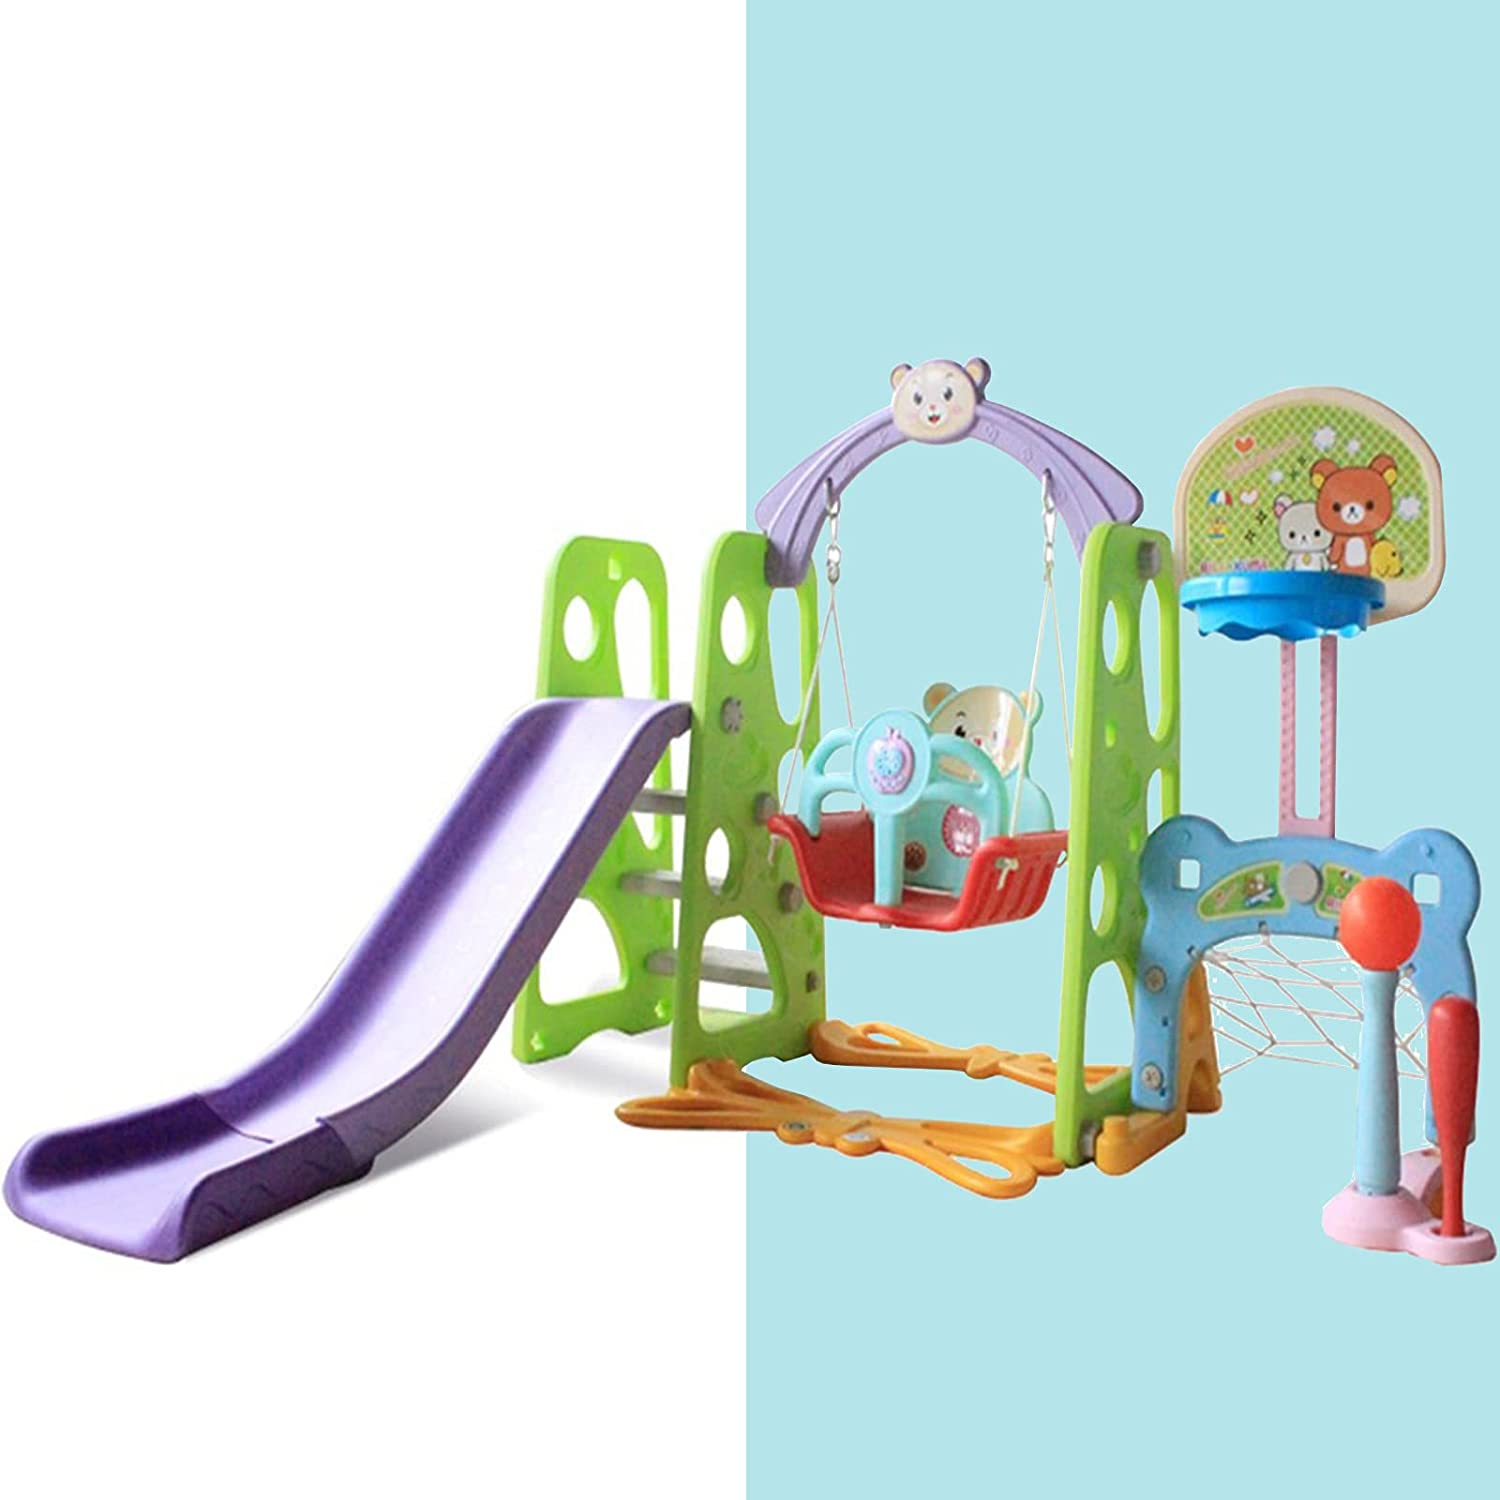 6 in 1 Toddler Slide and Swing Set Gift - Baby Playset Climber F